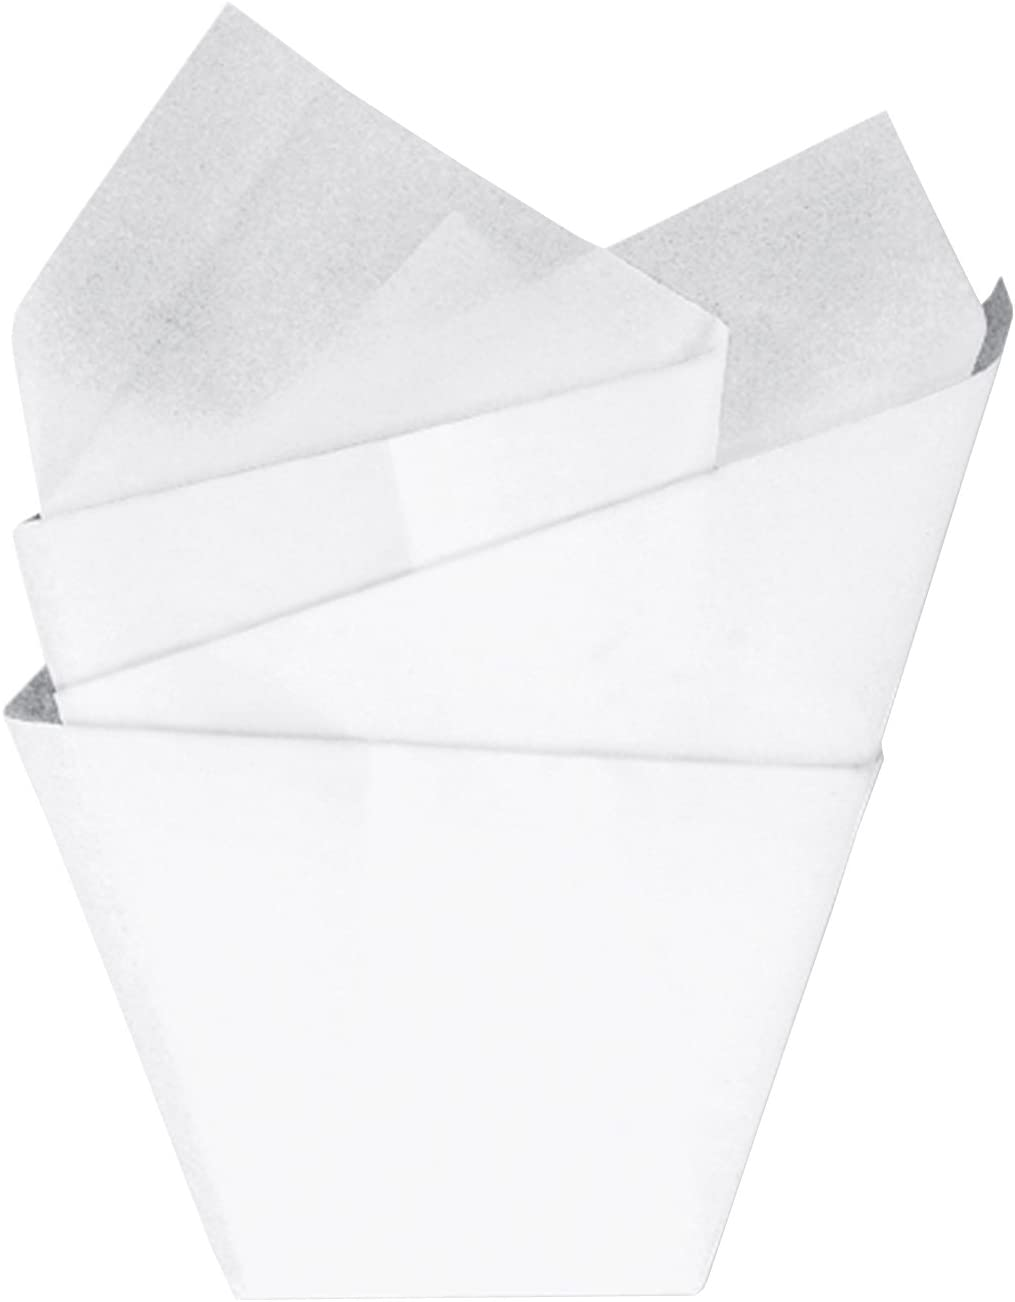 Wrap Breakables For School Crafting Projects And More C.R Gibson Tissue Paper 8 Folded Sheets Included White Each Sheet Measures 20 x 26 Use in Gift Bags